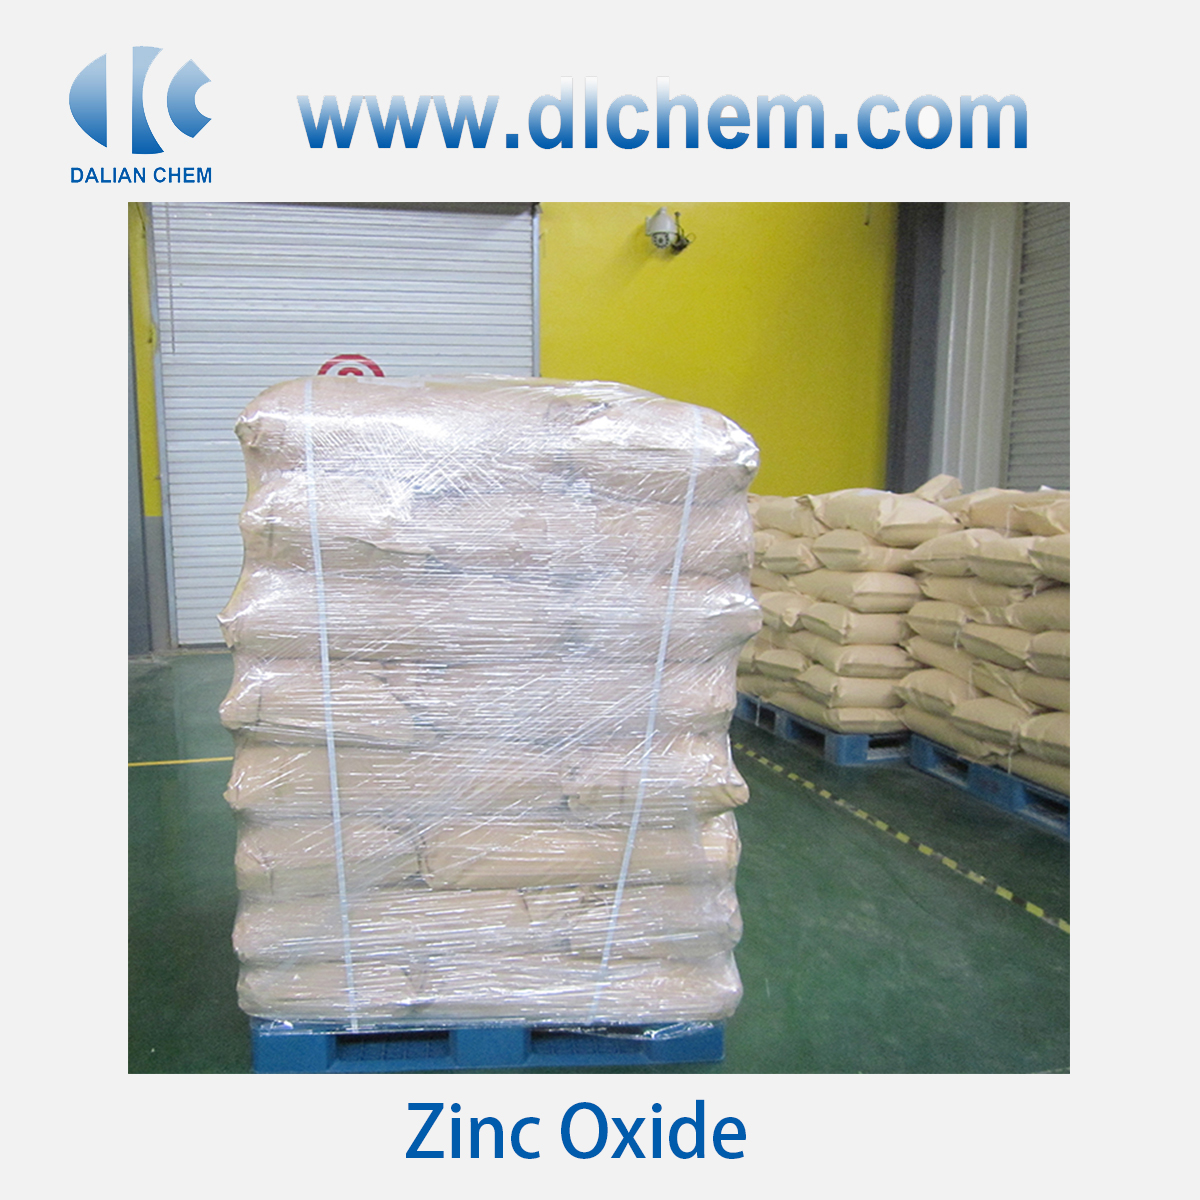 High Quality Feed Grade Zinc Oxide Factory Supplier in China